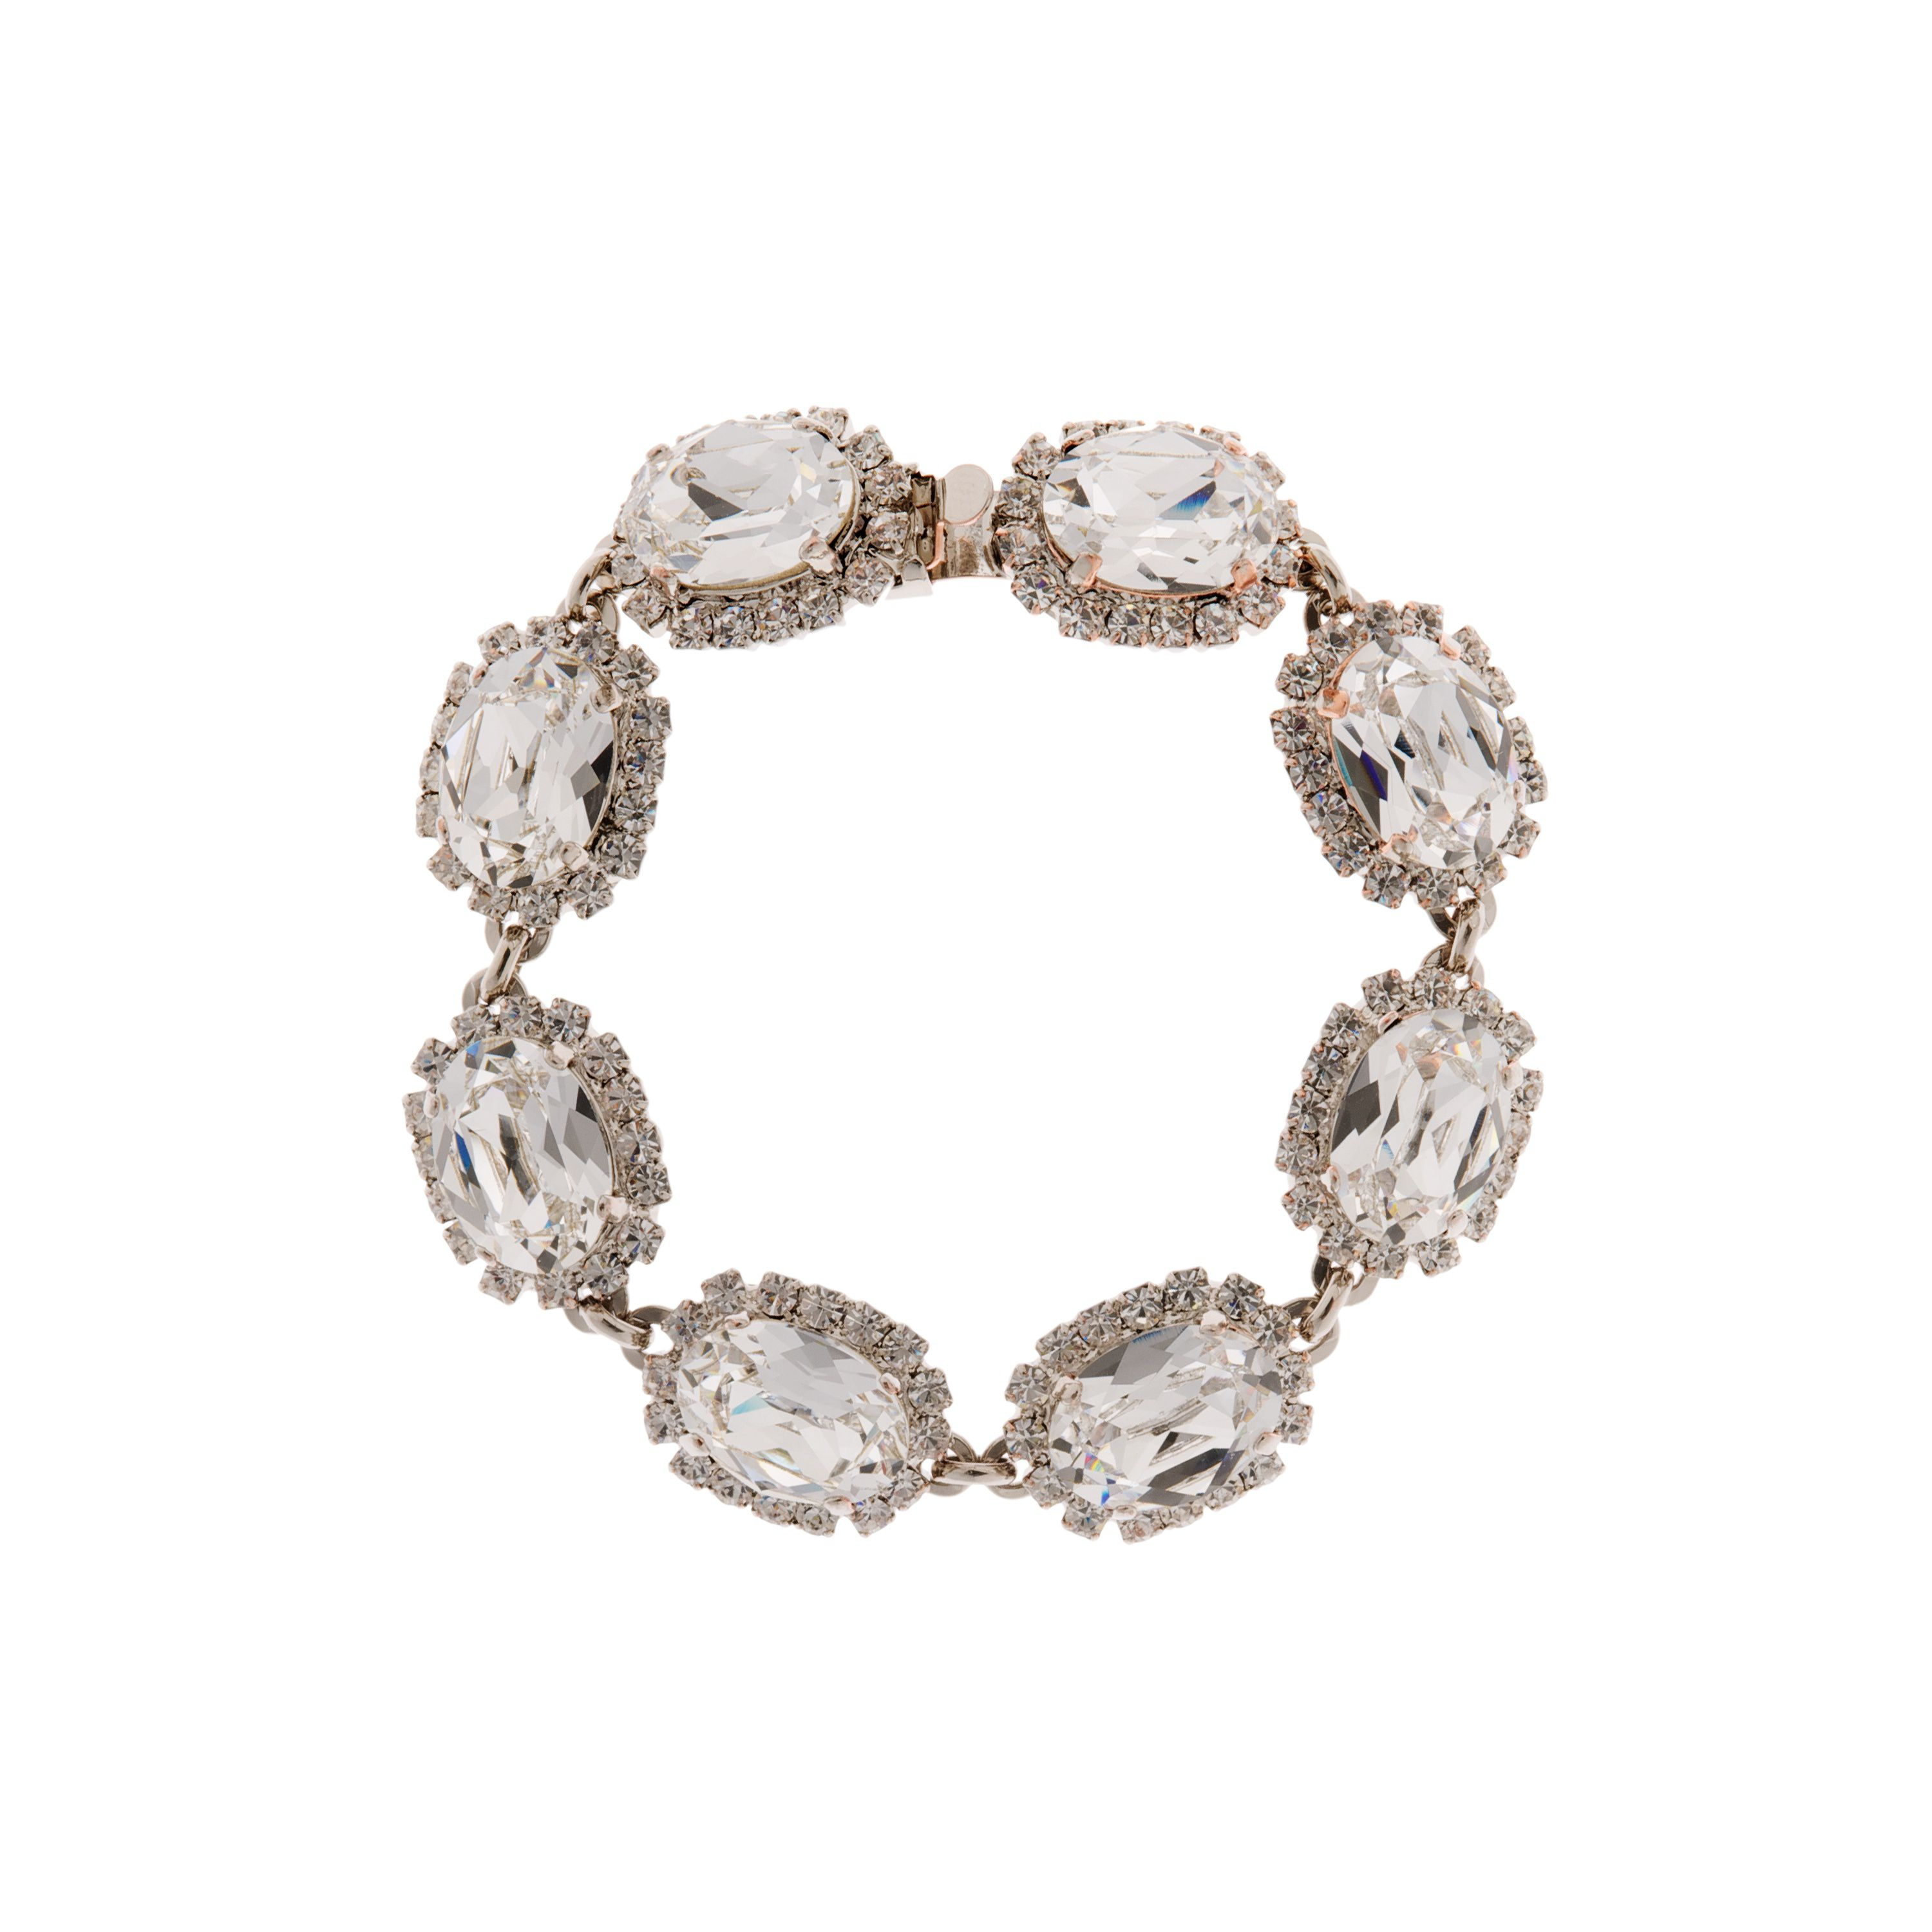 Bridal crystal oval stoned bracelet